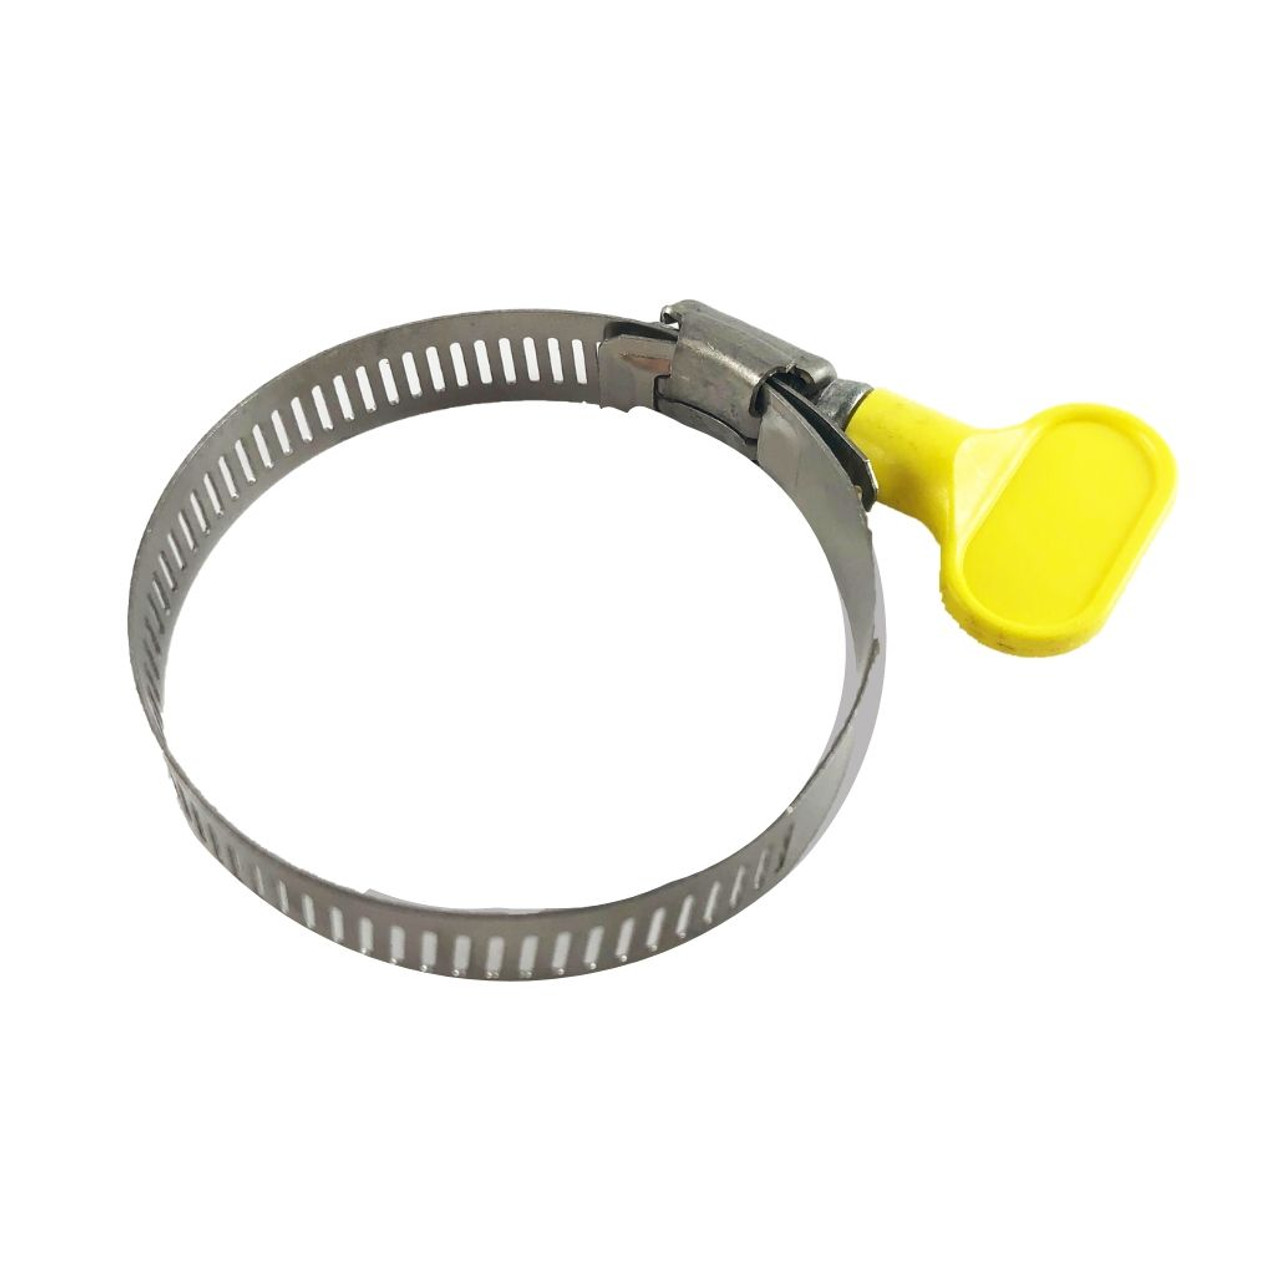 Hose Clamps (Large) for Suction Cup Antenna Mount